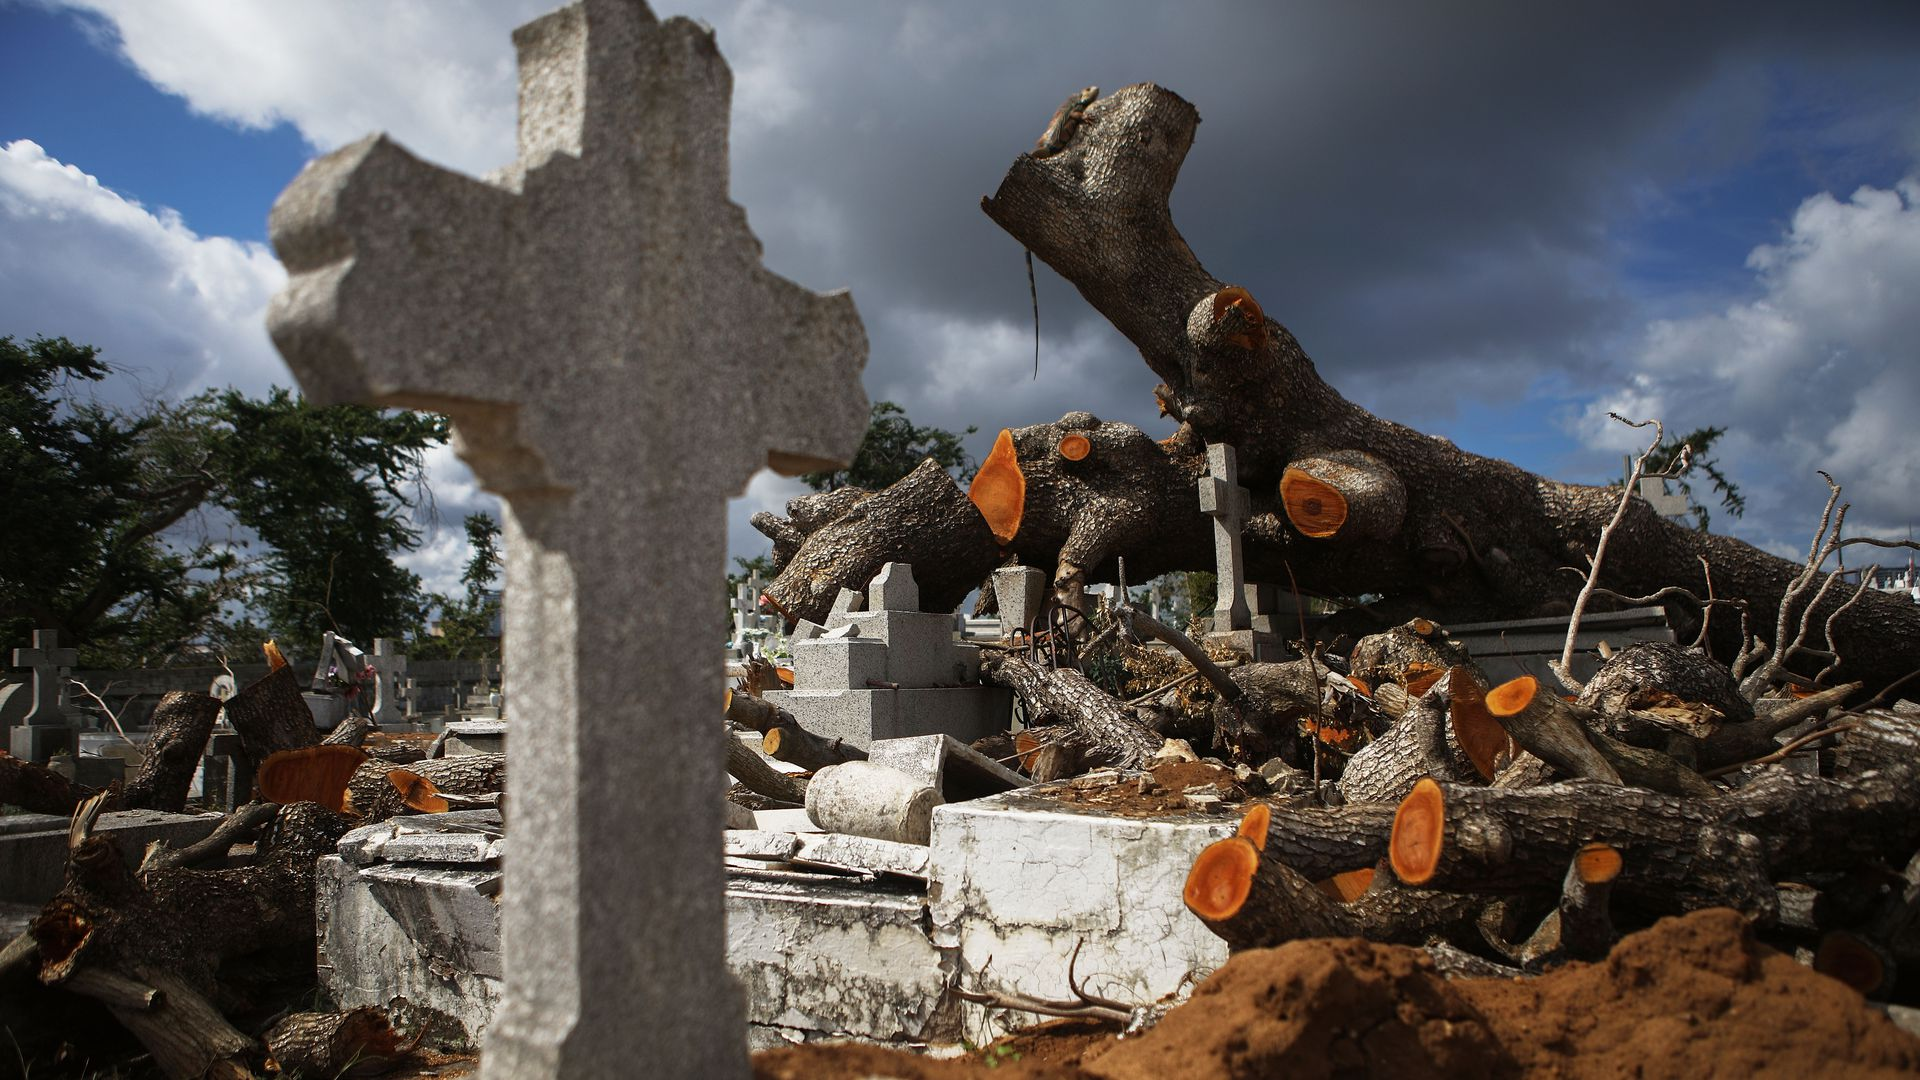 A tree toppled by Hurricane Maria lays next to a grave.